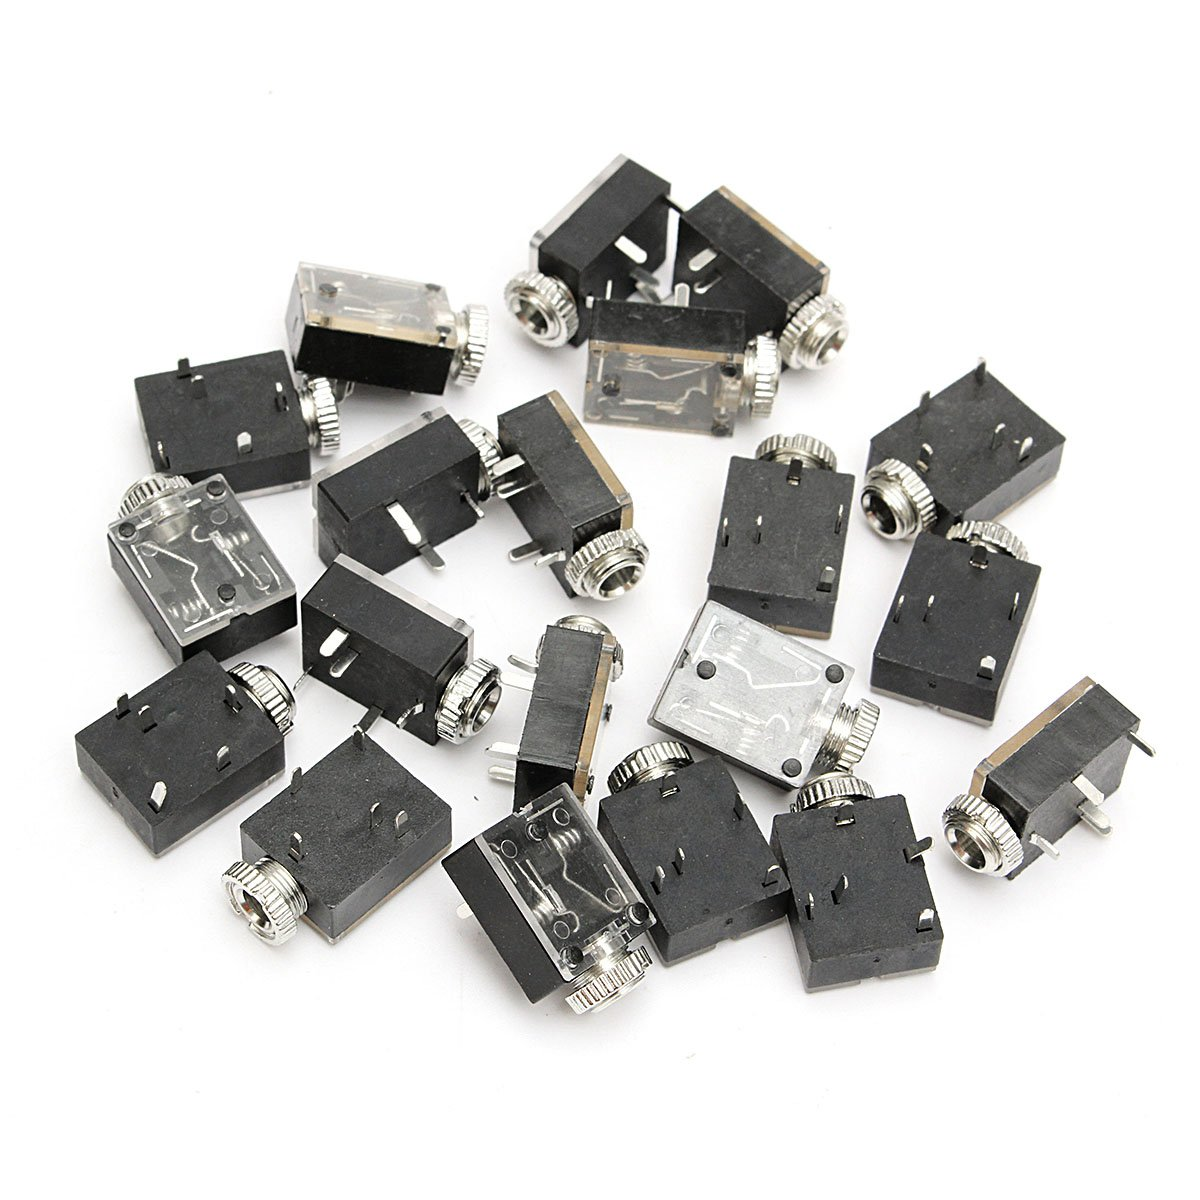 KISENG 20Pcs 1//8 3.5mm Stereo Jack Socket Headphones with Nut PCB Mounting Chassis